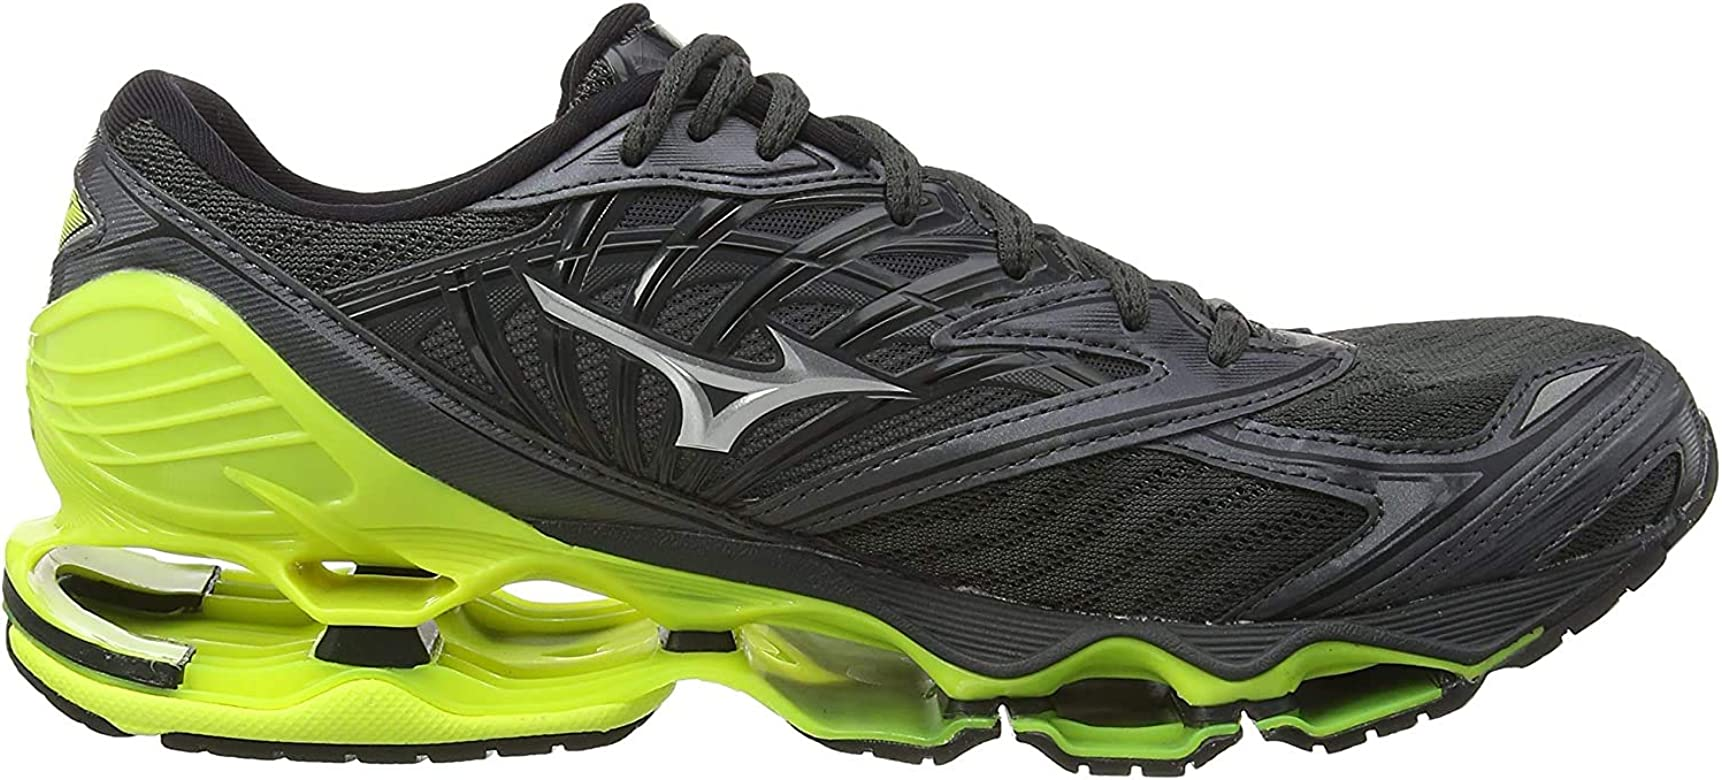 Mizuno Wave Prophecy 8, Zapatillas de Running para Hombre, Gris (DarkShadow/Silver/SafetyYellow 05), 48.5 EU: Amazon.es: Zapatos y complementos